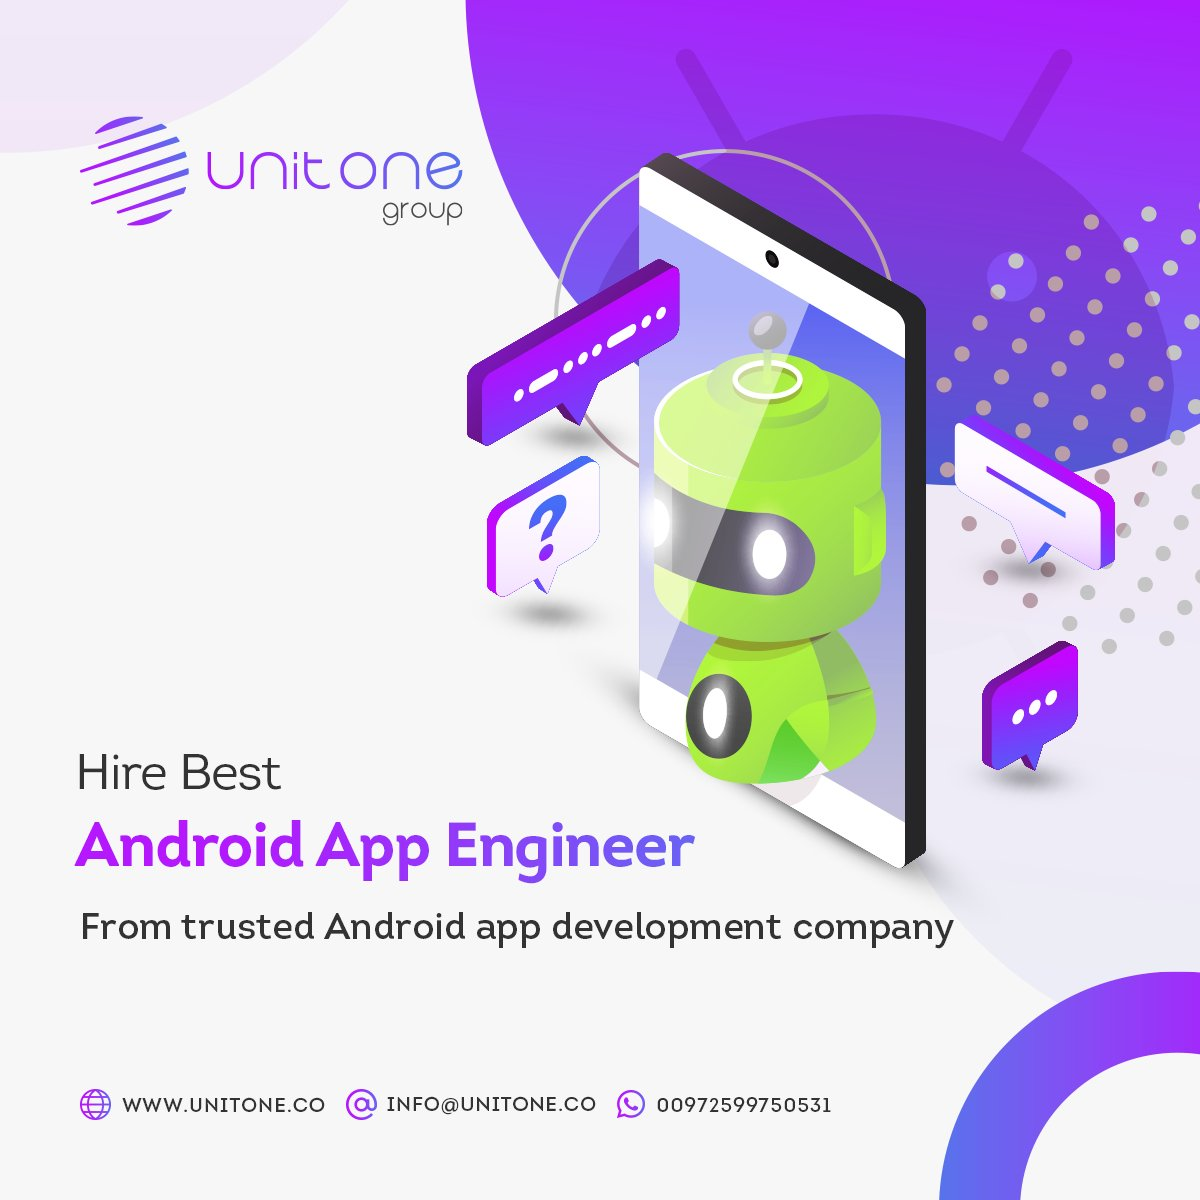 Are You Looking For #Talent #Android  #Engineers ?  for more information contact us:  https:// lnkd.in/deUddhX     #androiddevelopment #androiddeveloper  #androiddevelopers  #androiddev  #androidappdevelopment #androidapps  #applicationdevelopment #google #appdevelopmentcompany<br>http://pic.twitter.com/MdjKpeXzC9